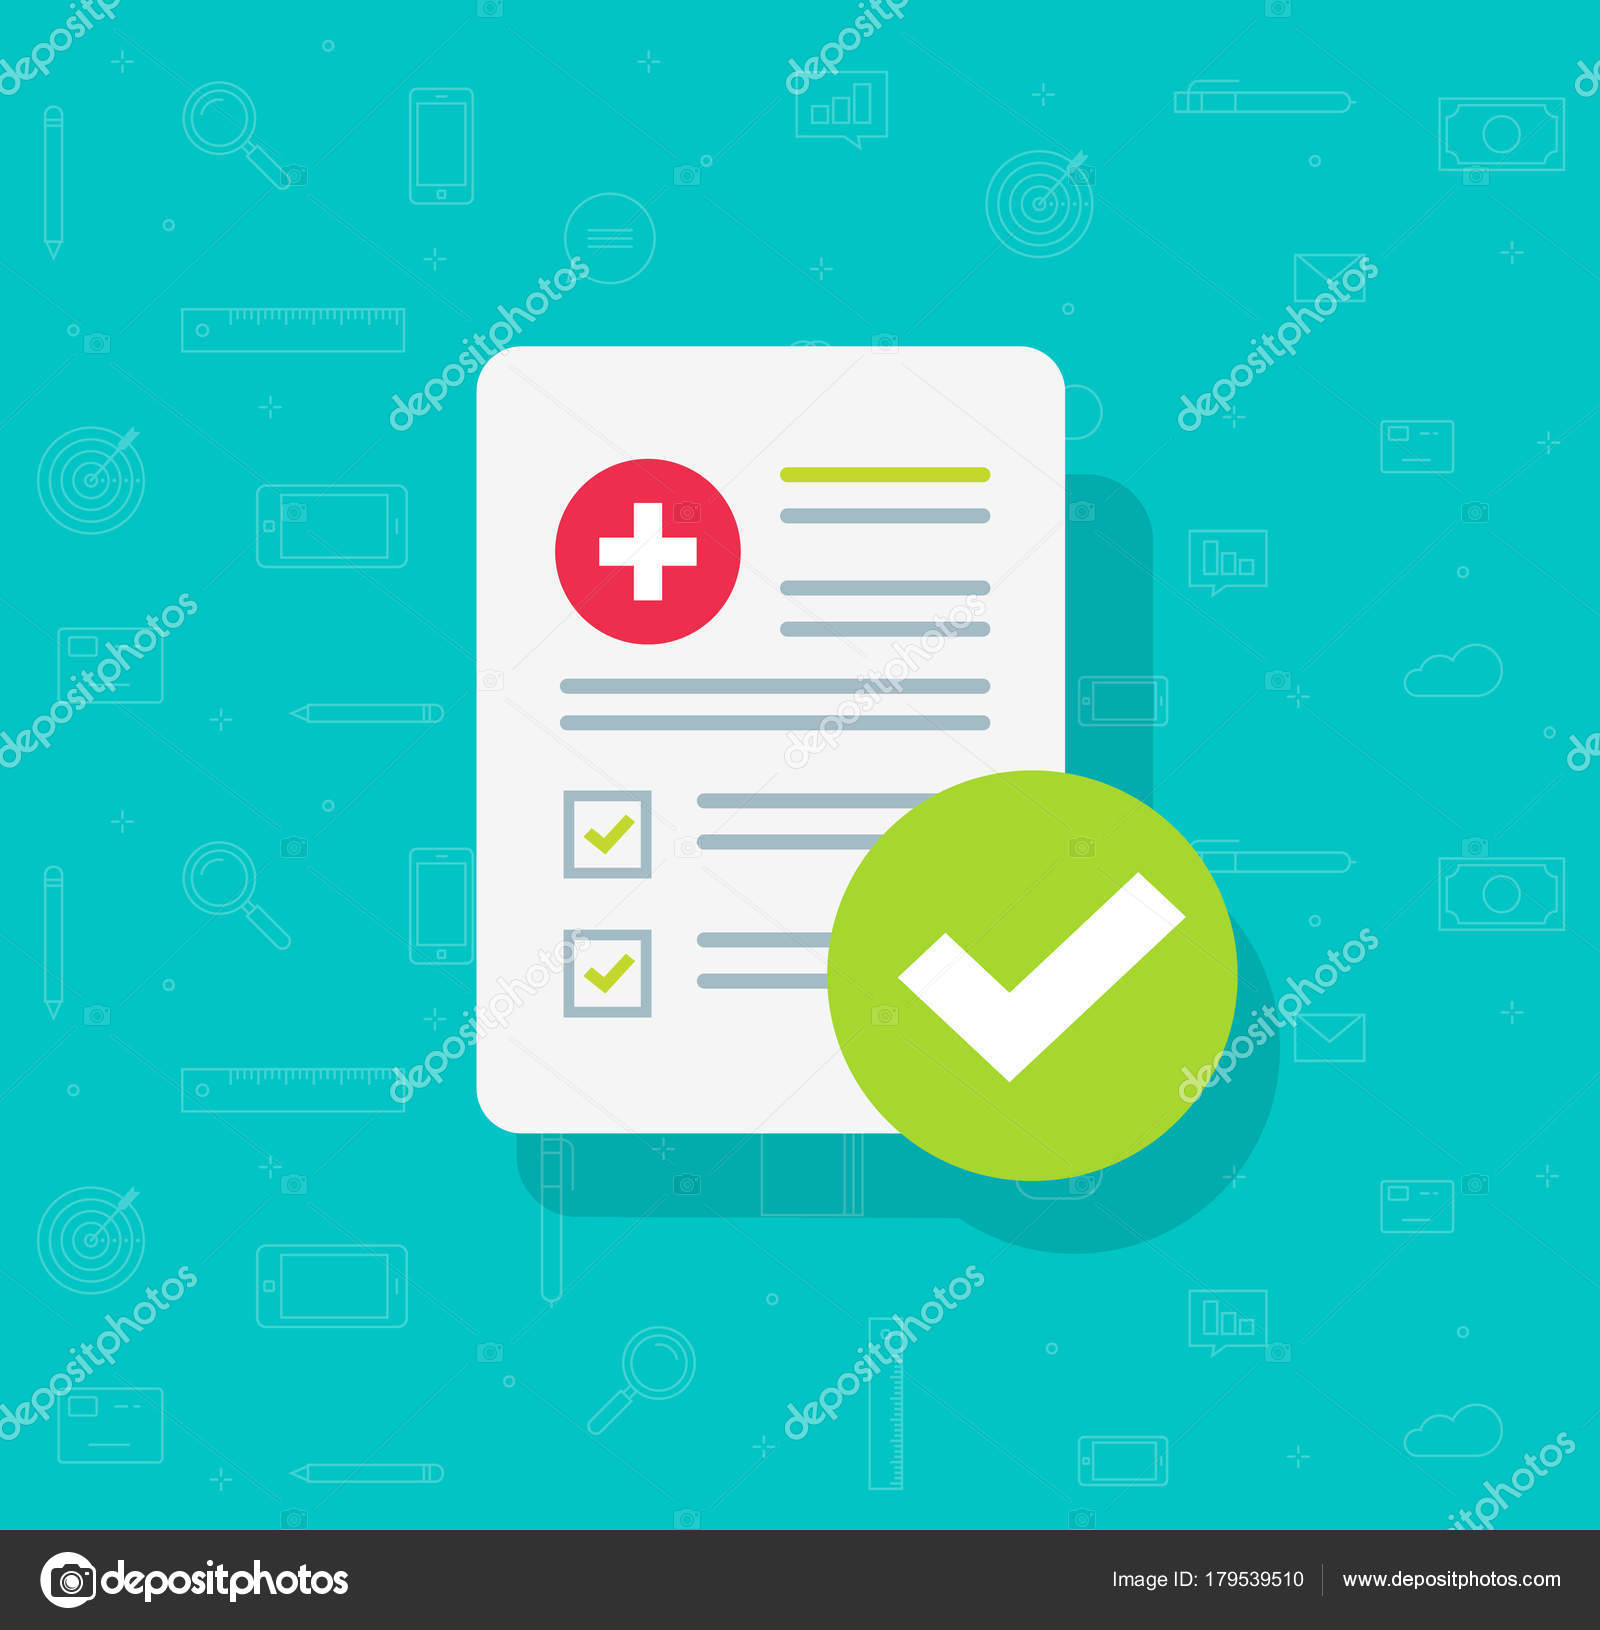 Medical form list with results data and approved check mark vector on medical files, medical insurance, medical papers, medical schedule, medical documentation, medical checklist, medical backgrounds, medical questionnaire, medical flyers, medical privacy policy, medical history, medical treatment, medical records, medical signs, medical logo, medical charts, medical documents, medical paperwork, medical information, medical reports,